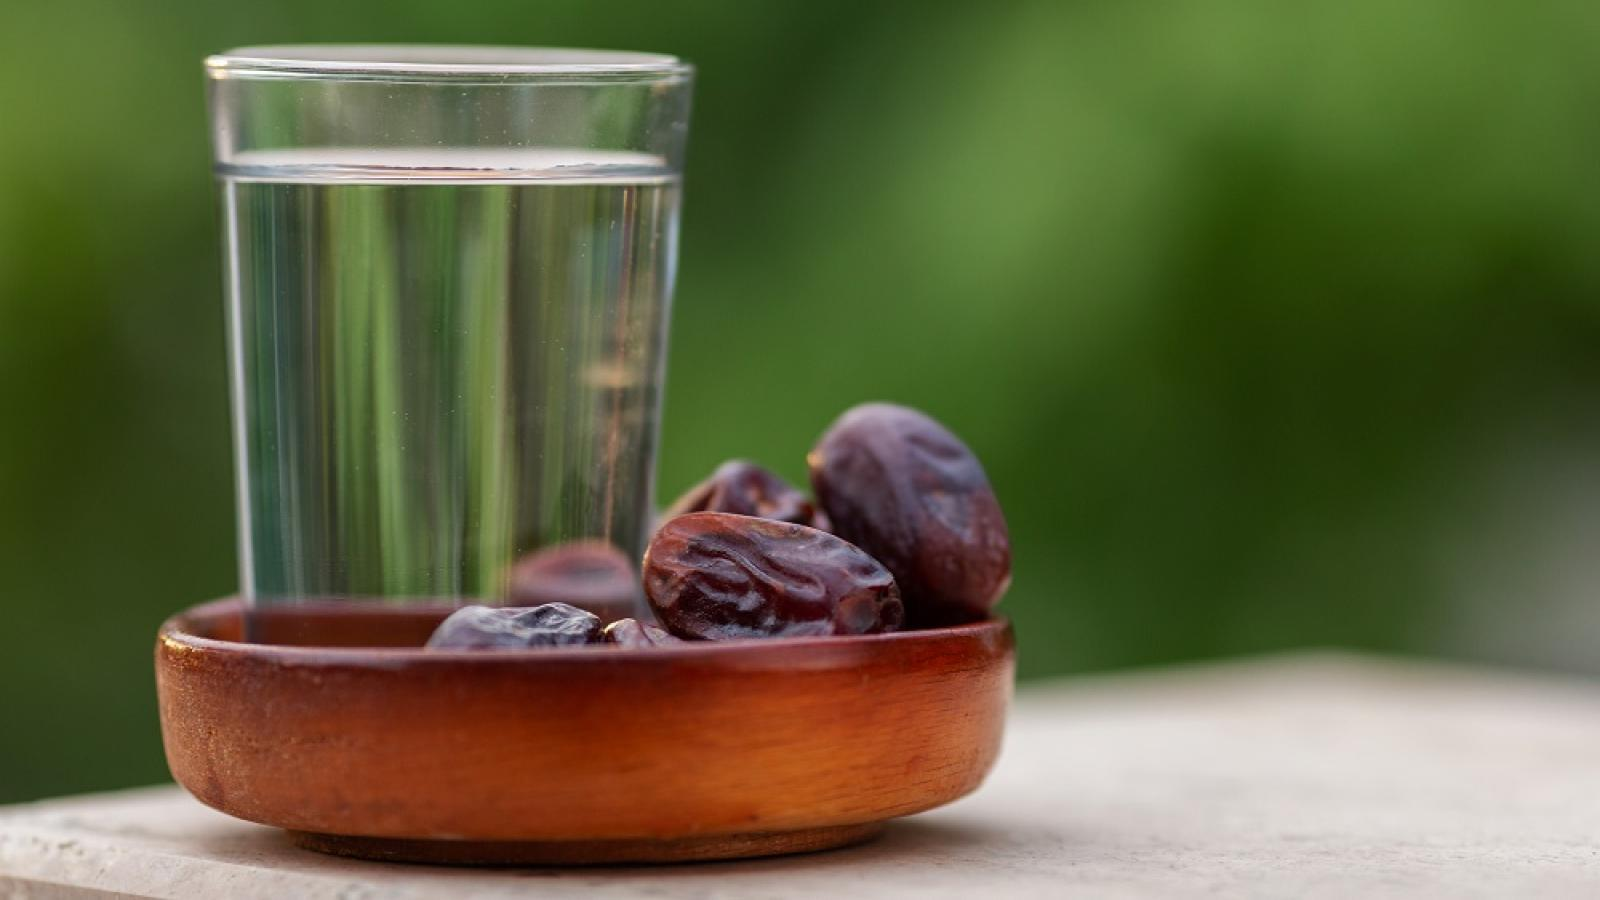 How to stay hydrated during the holy month of Ramadan